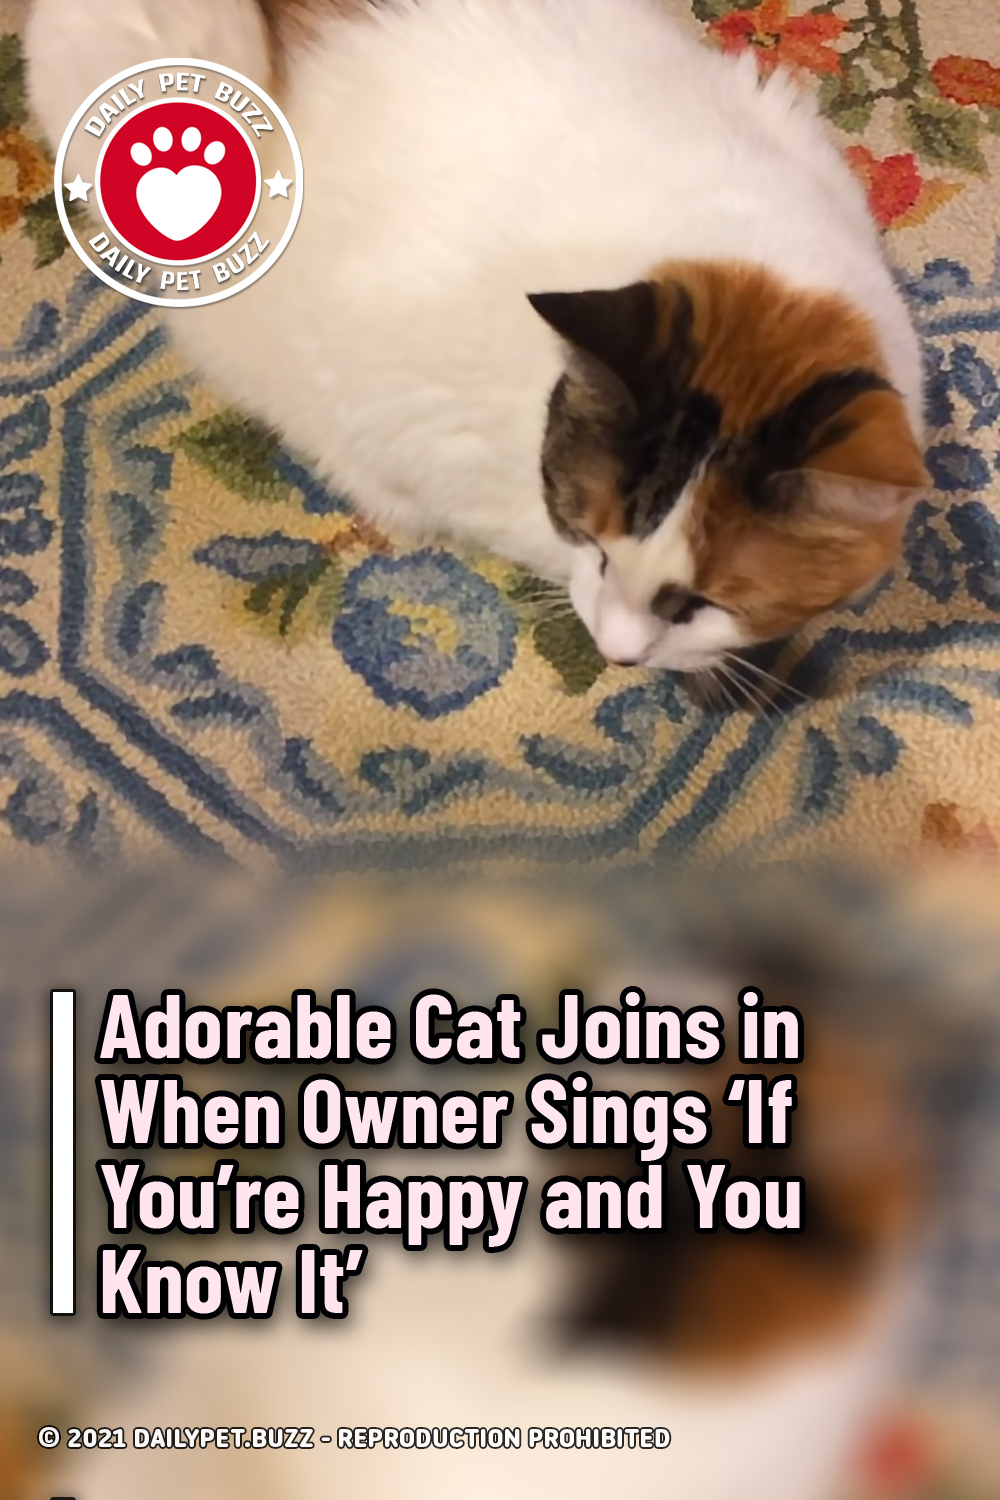 Adorable Cat Joins in When Owner Sings \'If You're Happy and You Know It\'